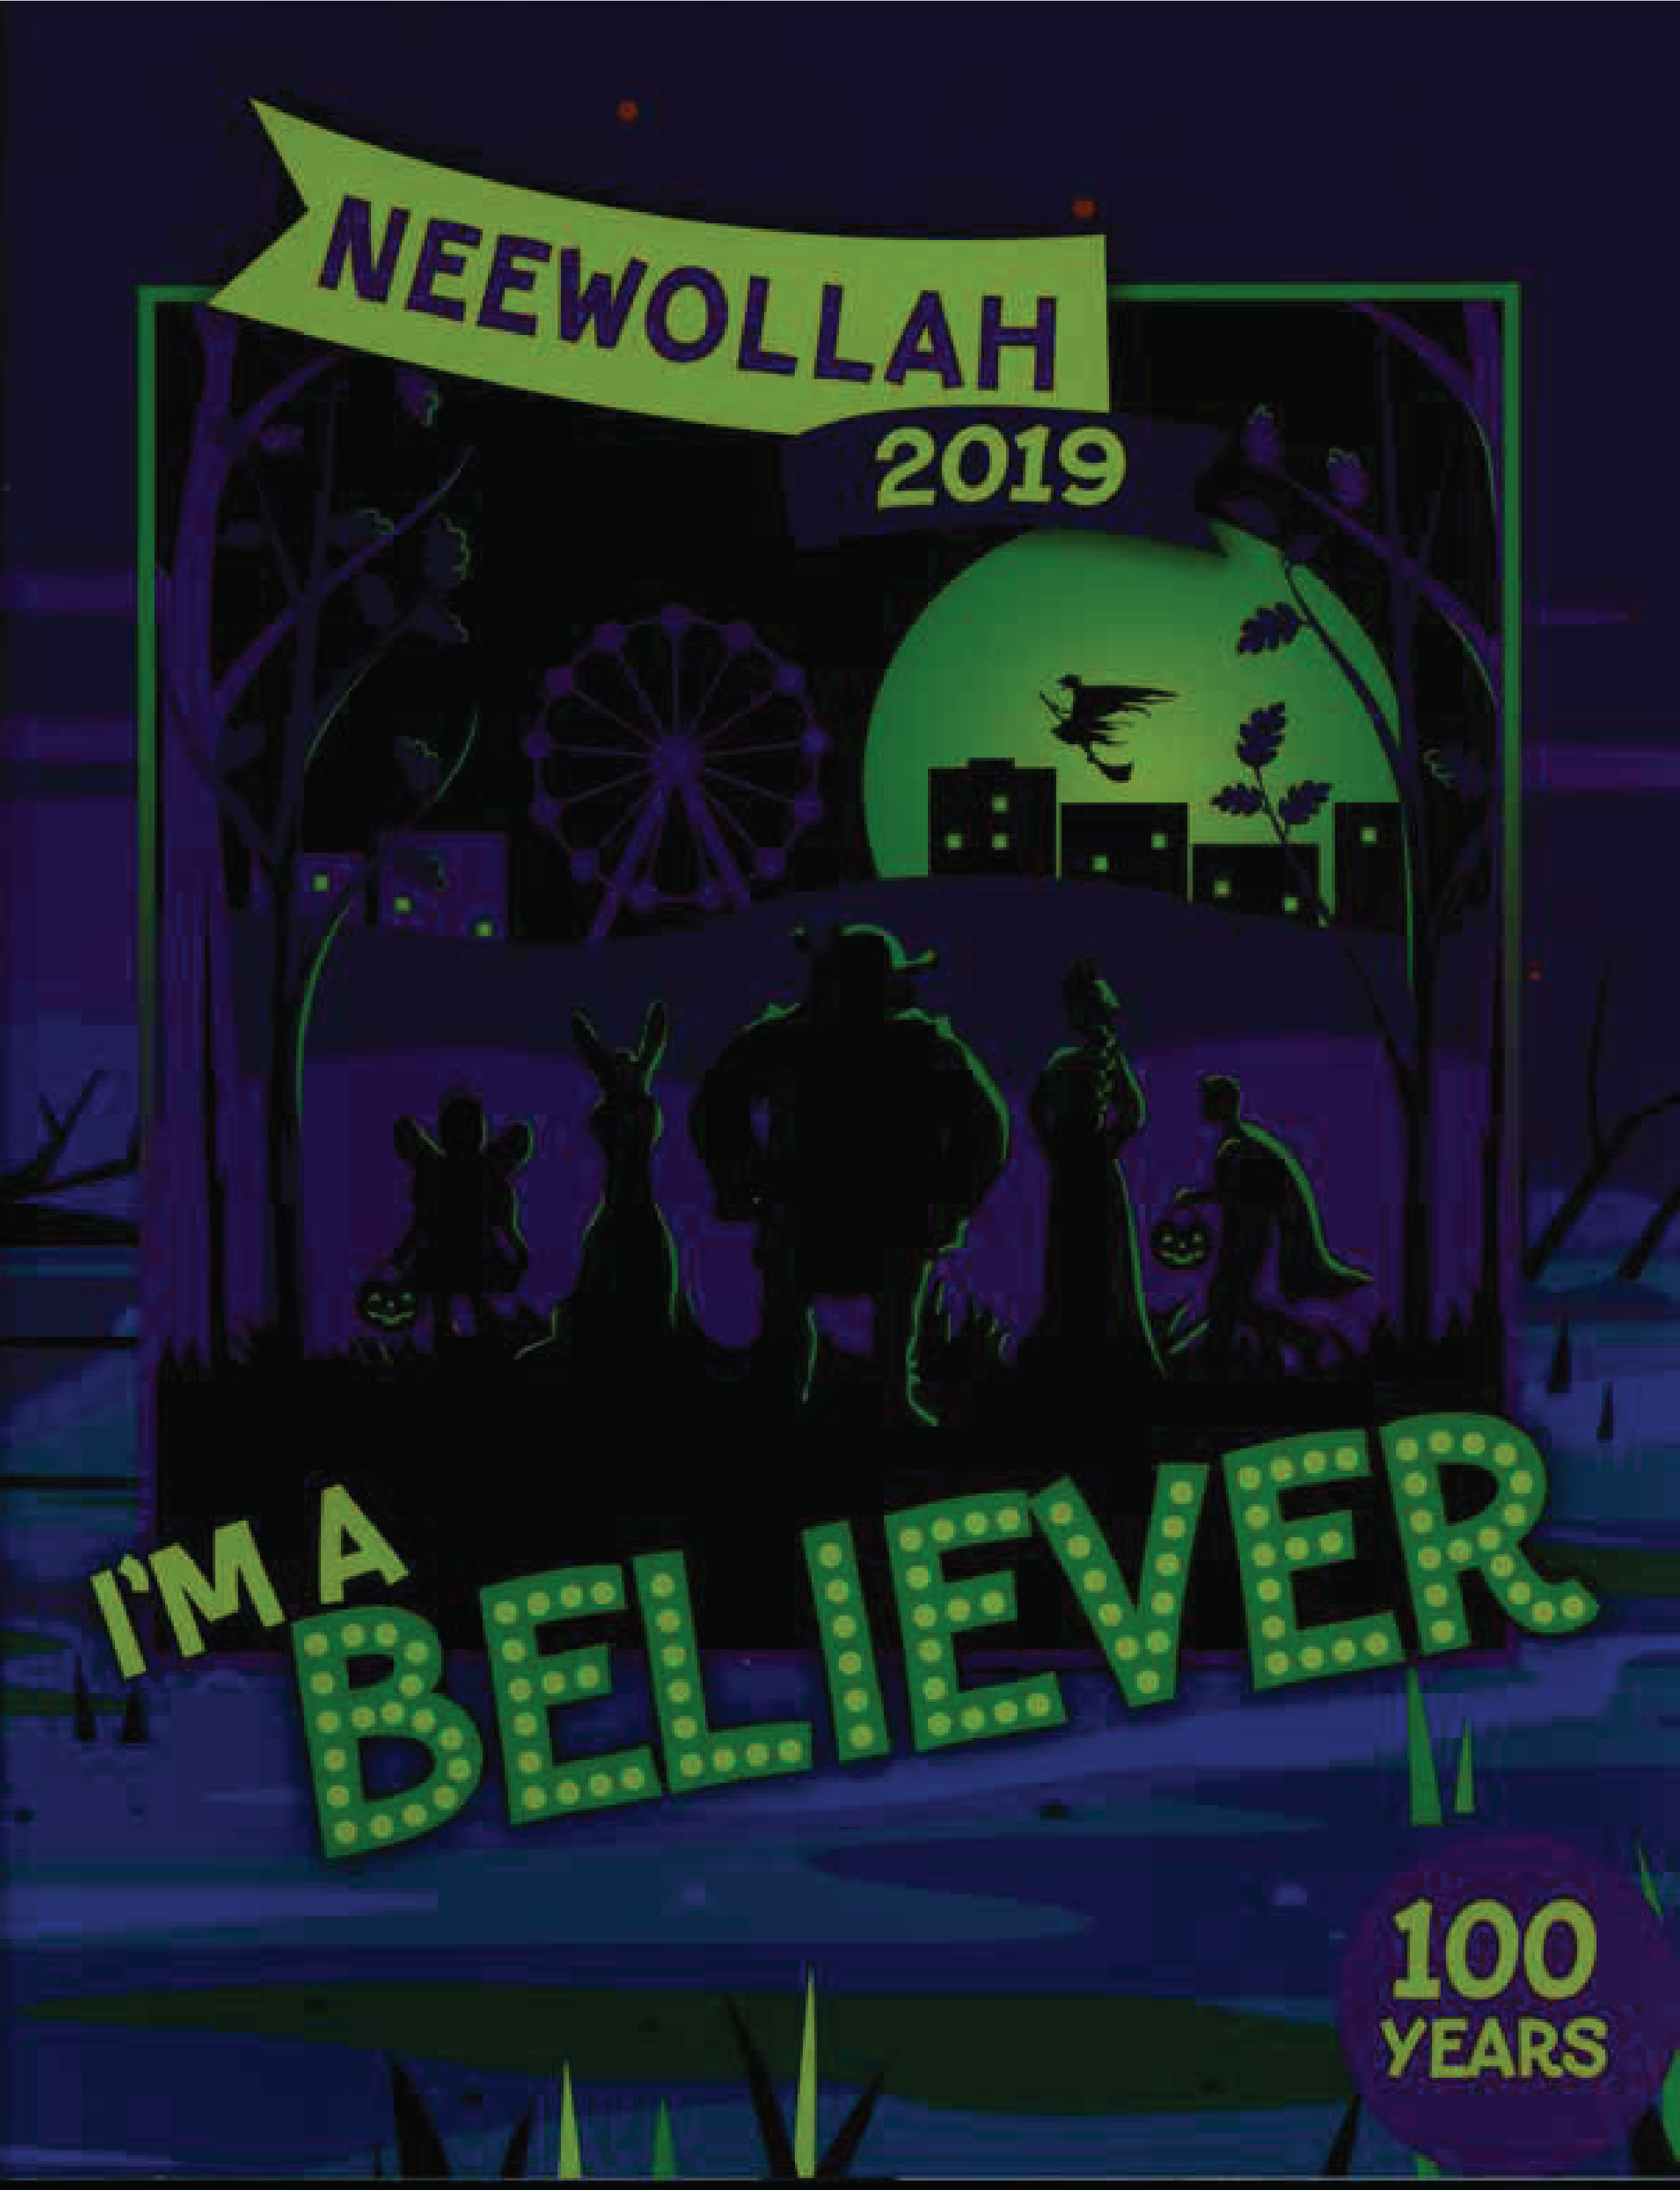 Neewollah 2019 I'm a Believer